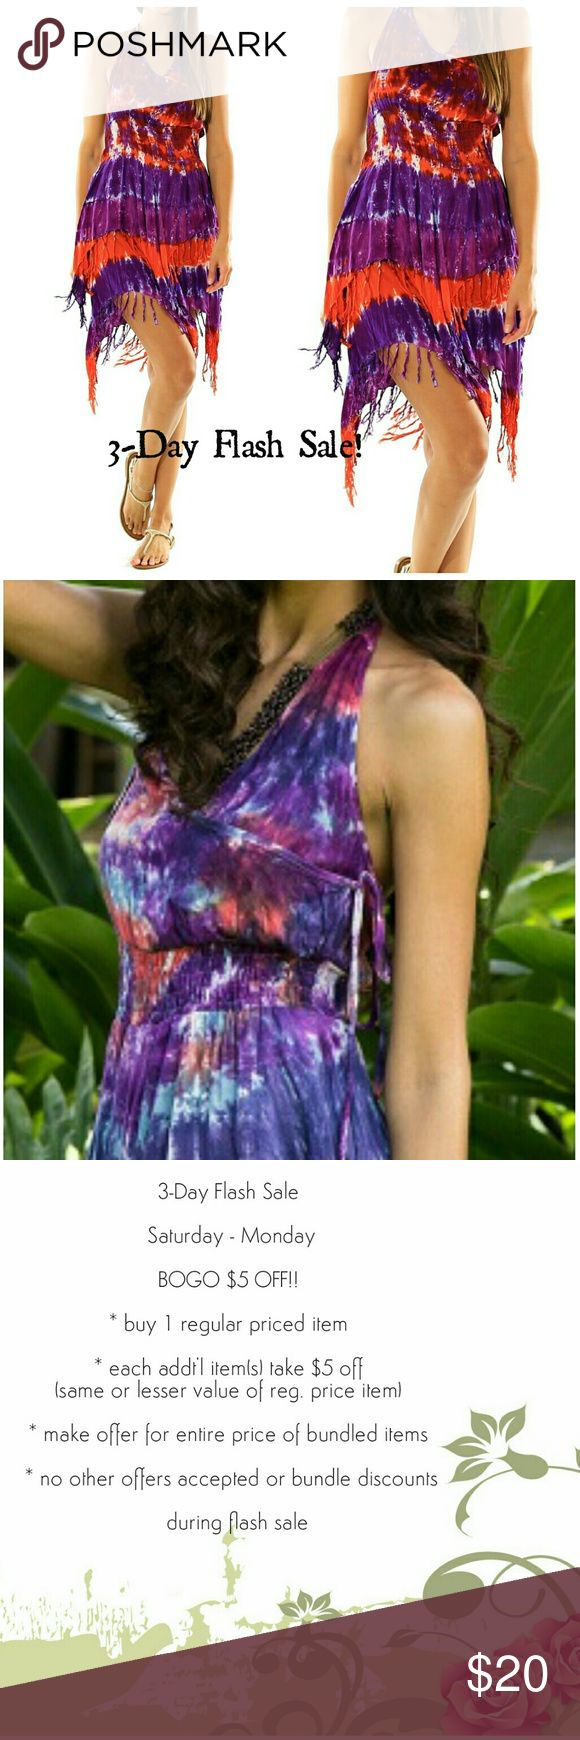 """BOGO $5 OFF! 💵💵 Buy one regular price item and take $5 OFF all additional items of same or lesser value to ☺️👍❤️  Festival Dress features a tie-dye pattern, neck-tie halter bodice with crossover underarm tie panel and elastic waist with two-level asymmetrical fringed hem. Purple/Red. 100 % Rayon.   2ND PICTURE IS TO SHOW CROSSOVER PANEL, THIS PANEL MAY HAVE A COWL DROP AFFECT.   Sizes: S (34""""), M (36""""), L (38""""),  XL (40"""") Length: 40"""" neck-to-longest hem  PLEASE CONTACT WITH ANY QUESTIONS…"""